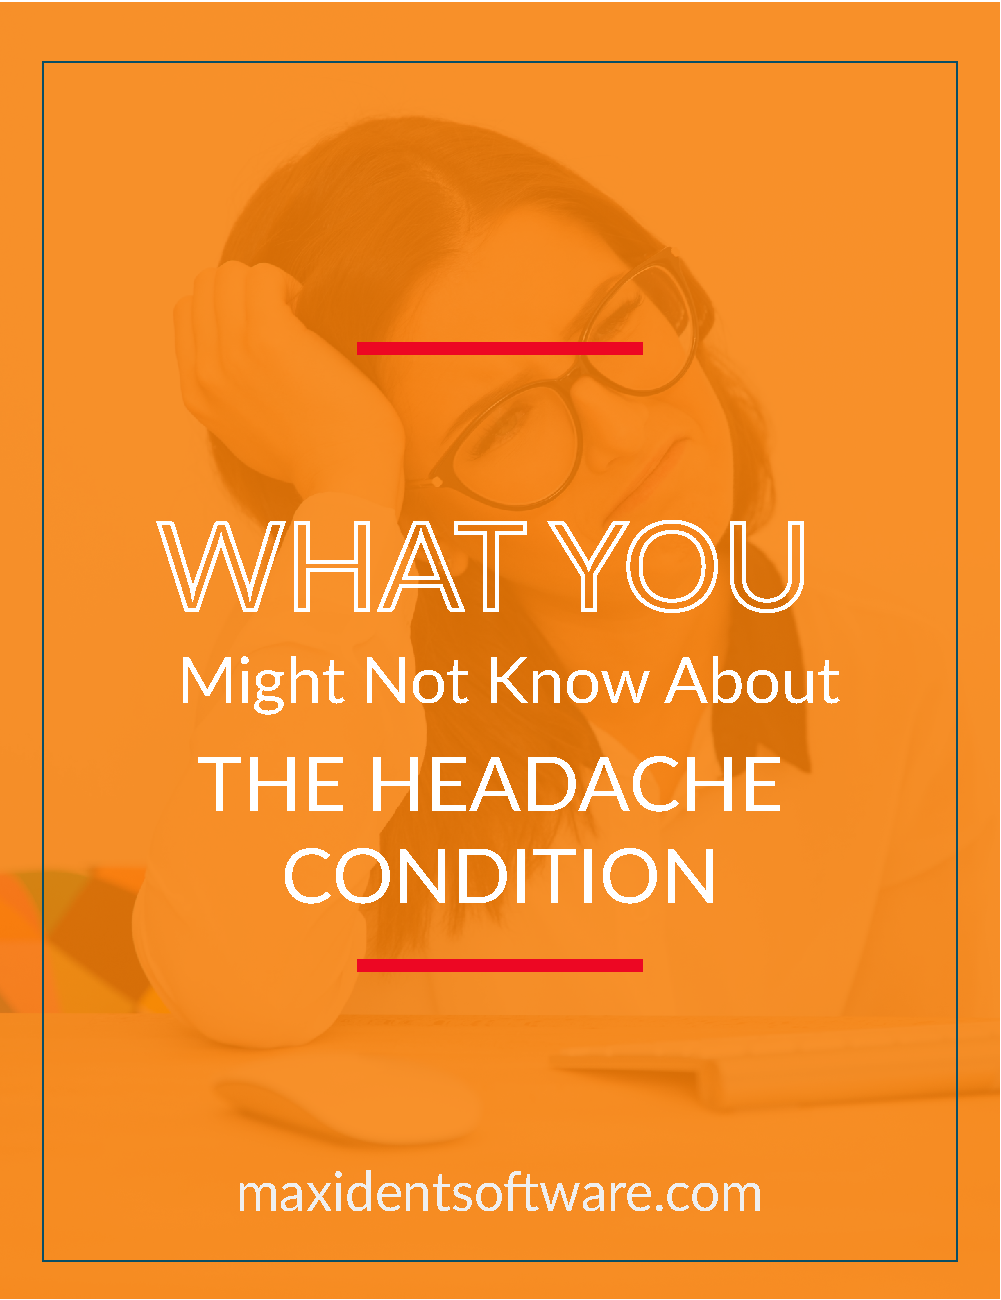 What You Might Not Know About the Headache Condition